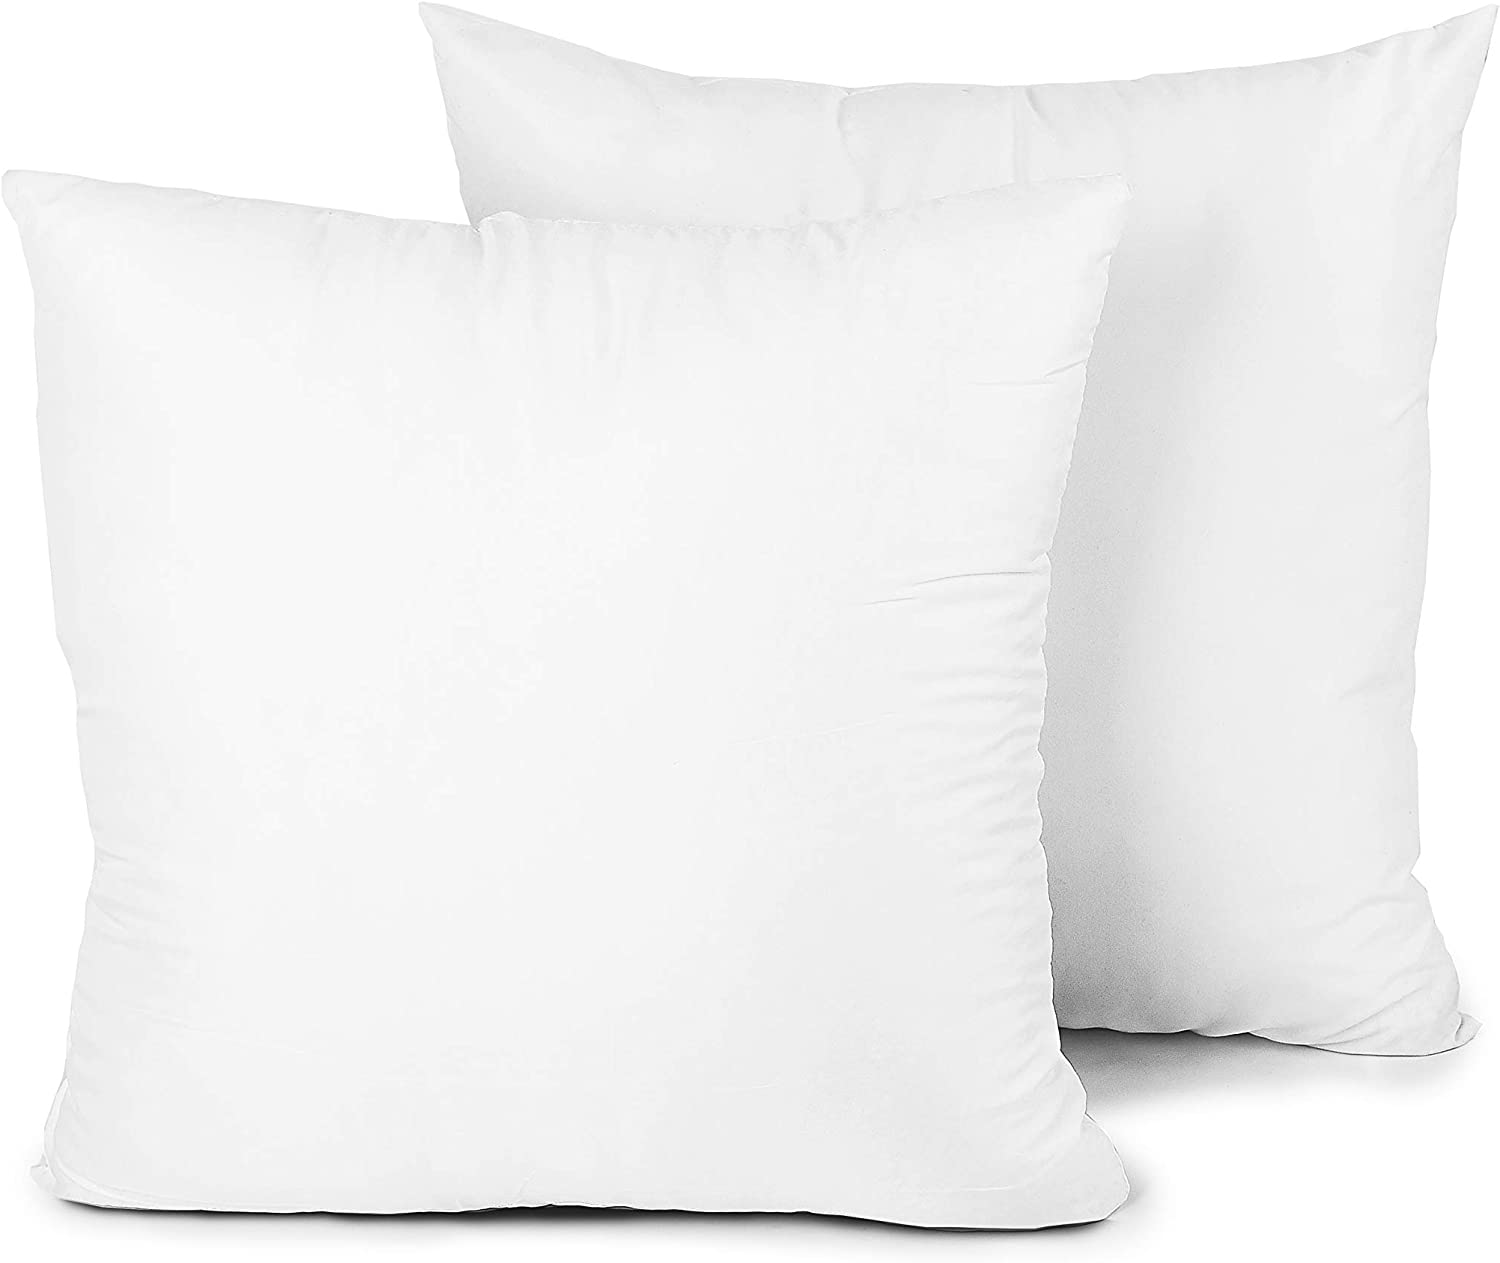 EDOW Throw Pillow Insert, Set of 2 Down Alternative Polyester Square Form Decorative Pillow, Cushion,Sham Stuffer. (White, 24x24)